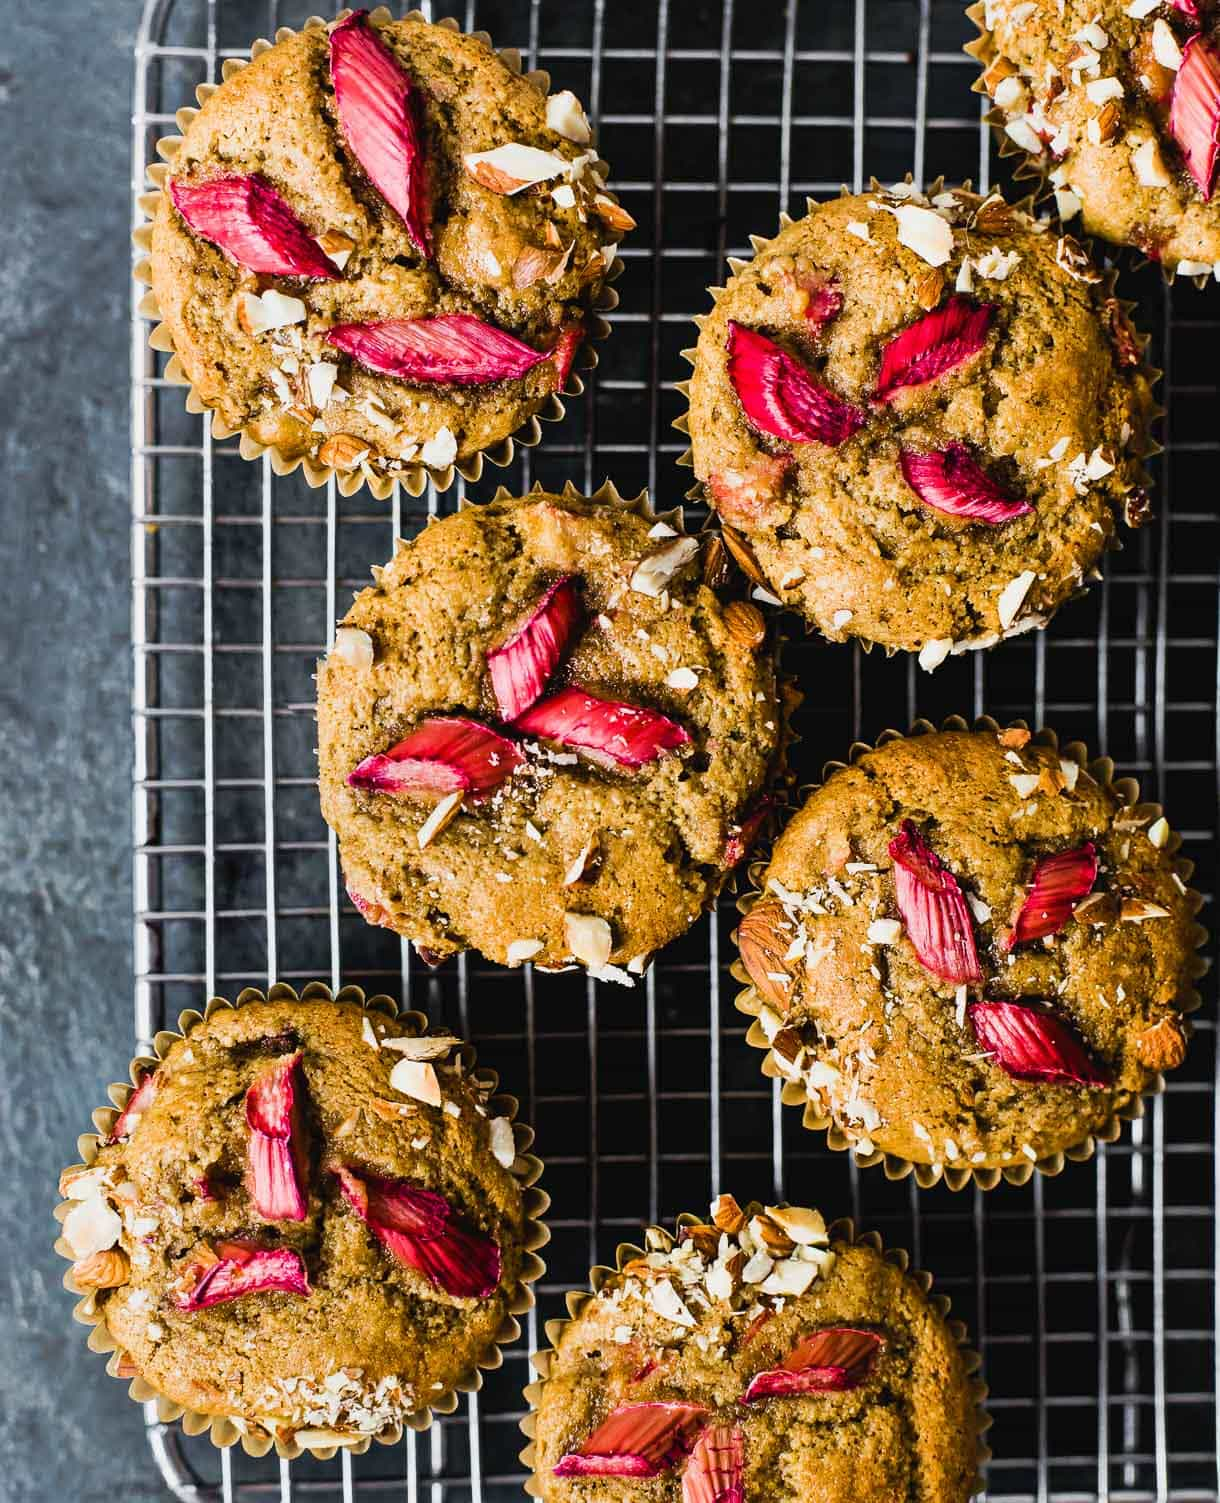 Gluten Free Almond Flour Muffins with Rhubarb